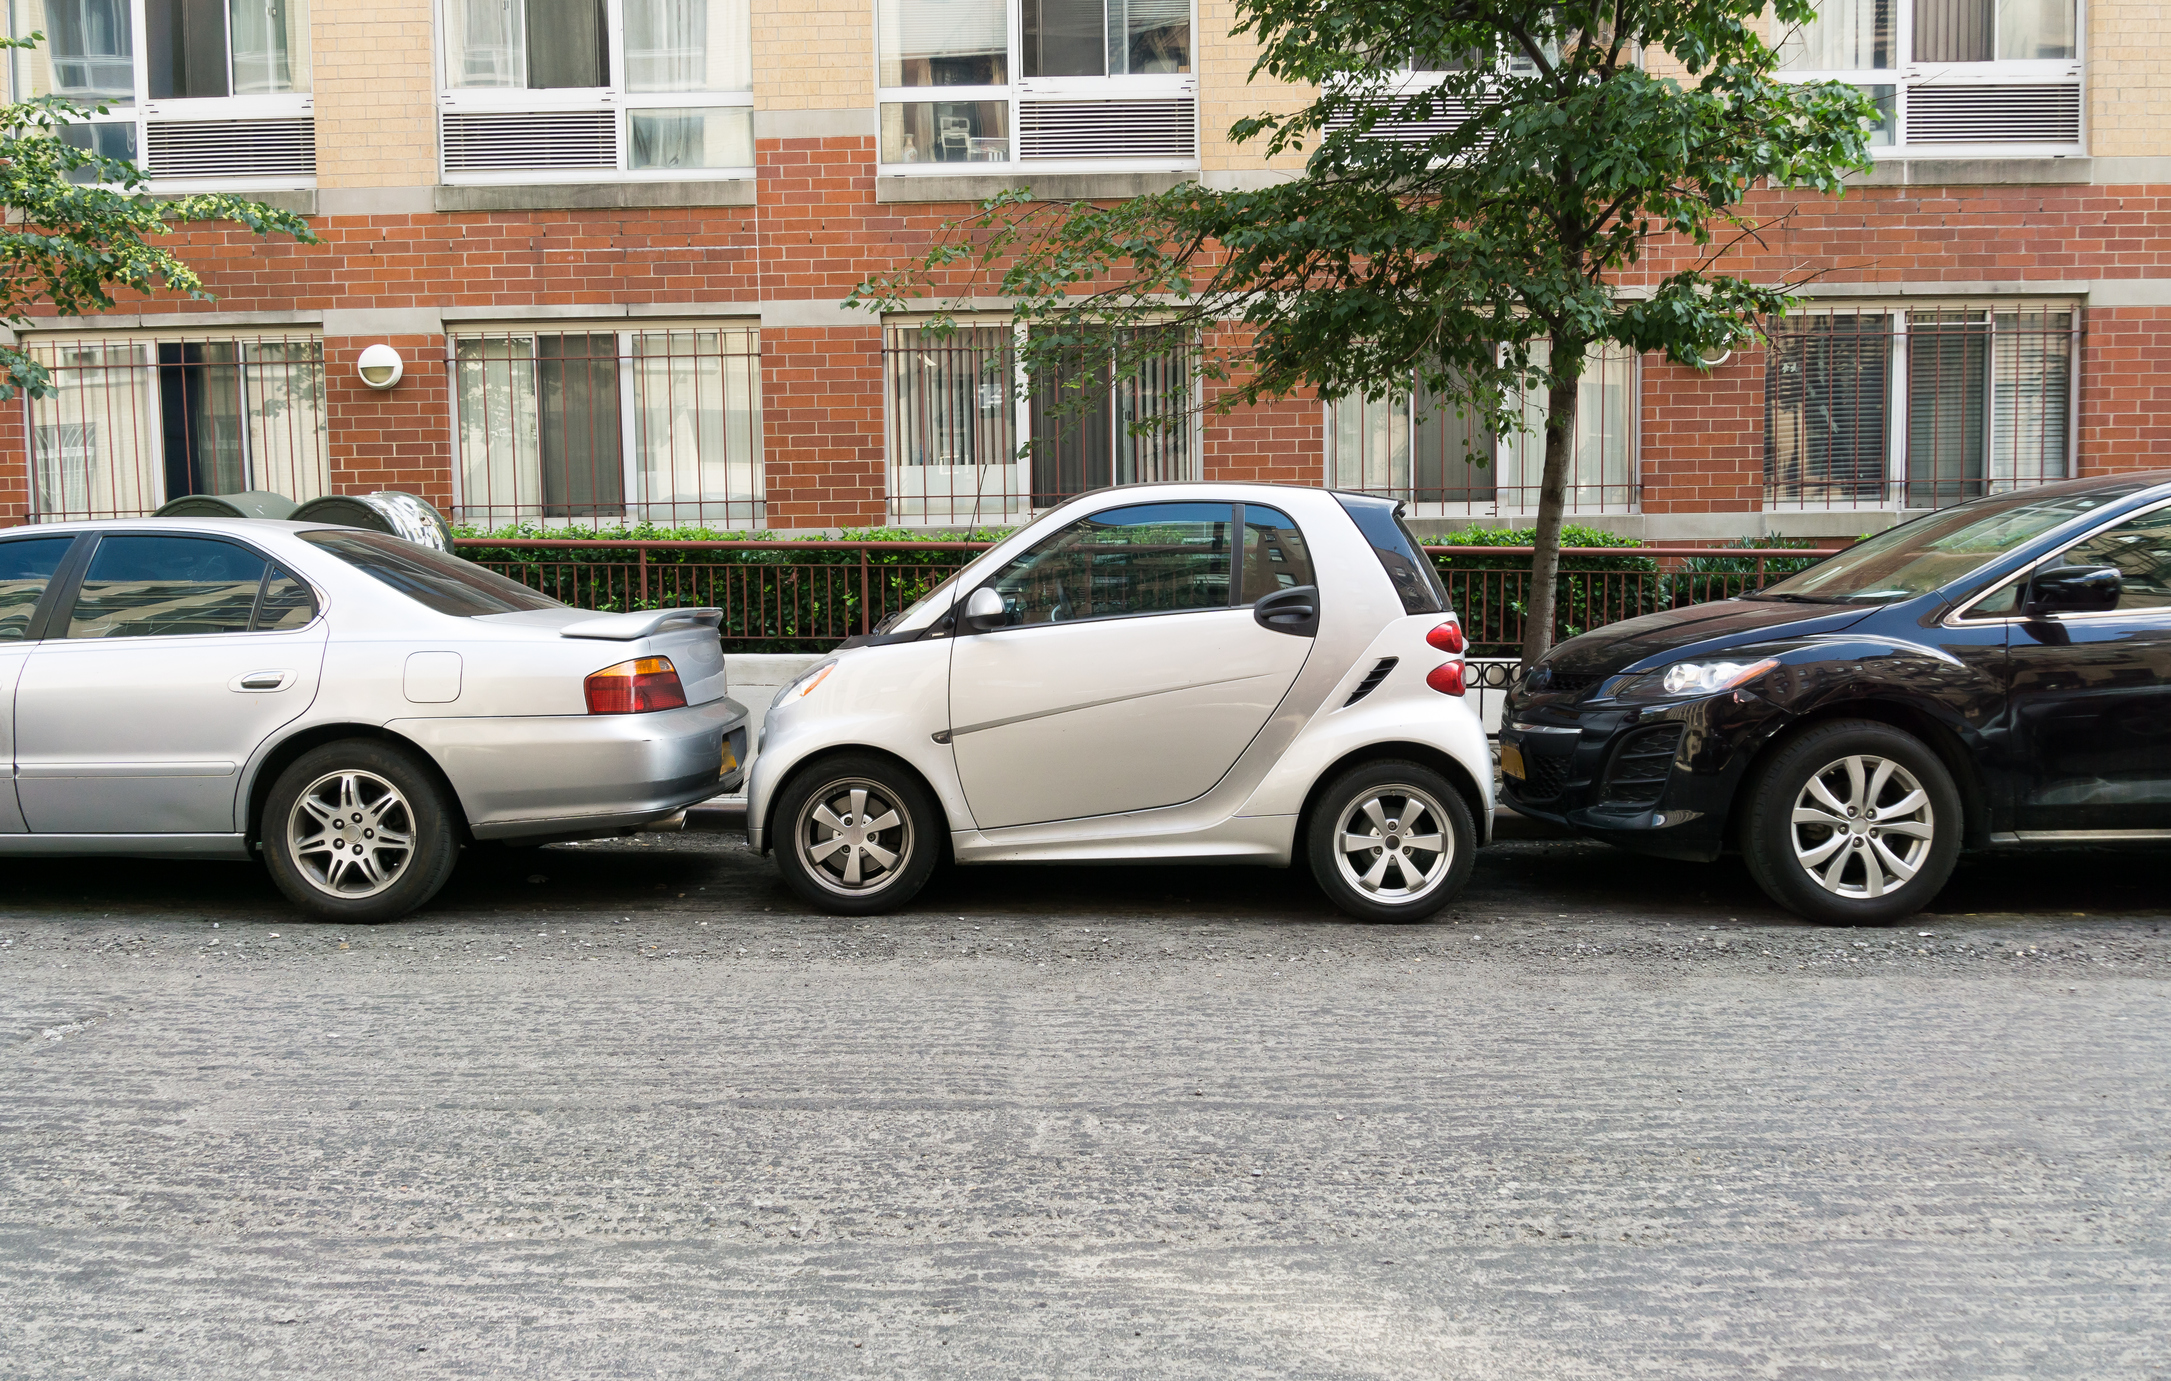 Car parallel parked